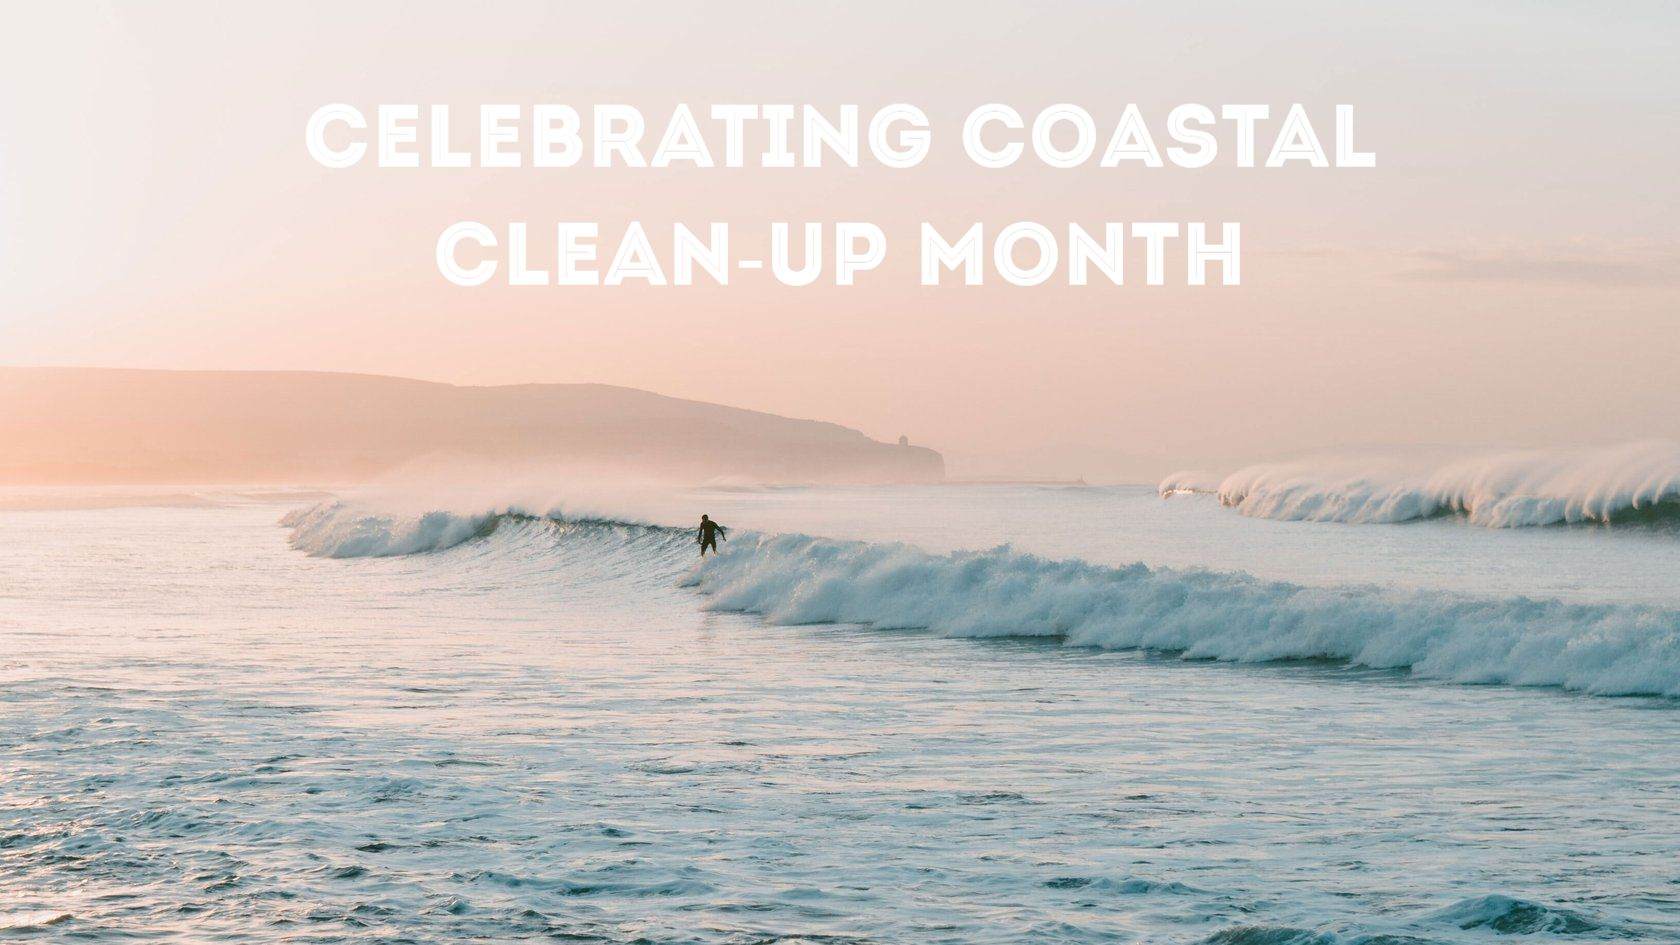 You're Invited: Join ChicoBag's Coastal Cleanup Month!